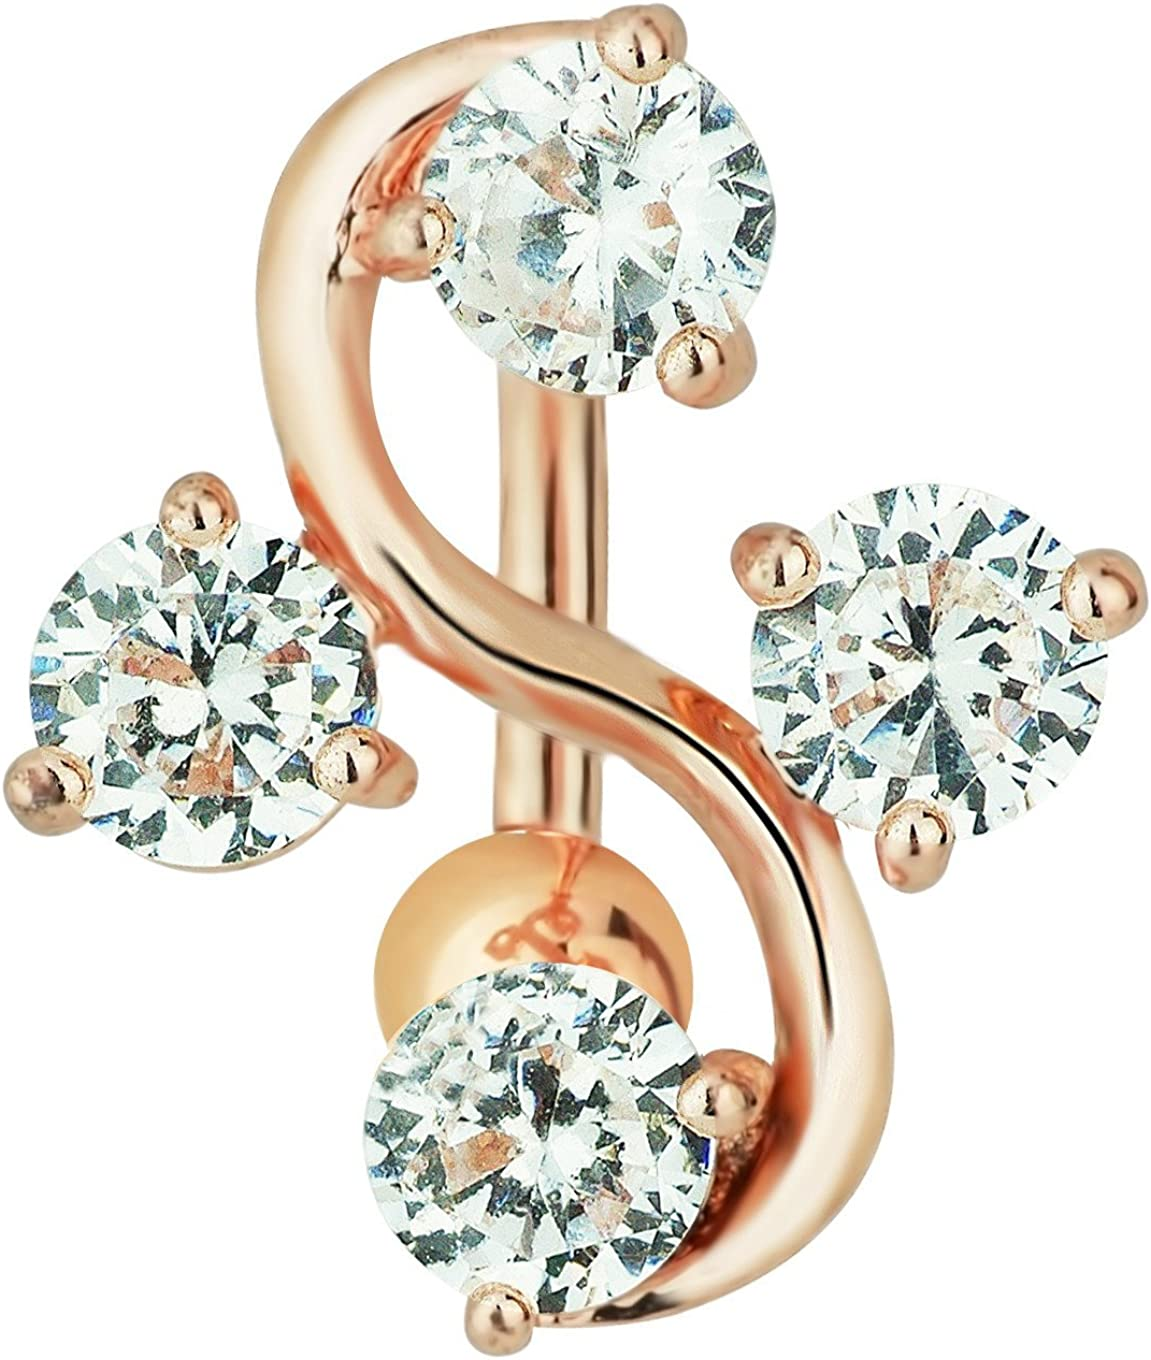 Forbidden Body Jewelry Surgical Steel Rose Gold IP Sexy Vine Reverse Mount CZ Crystal Belly Button Ring